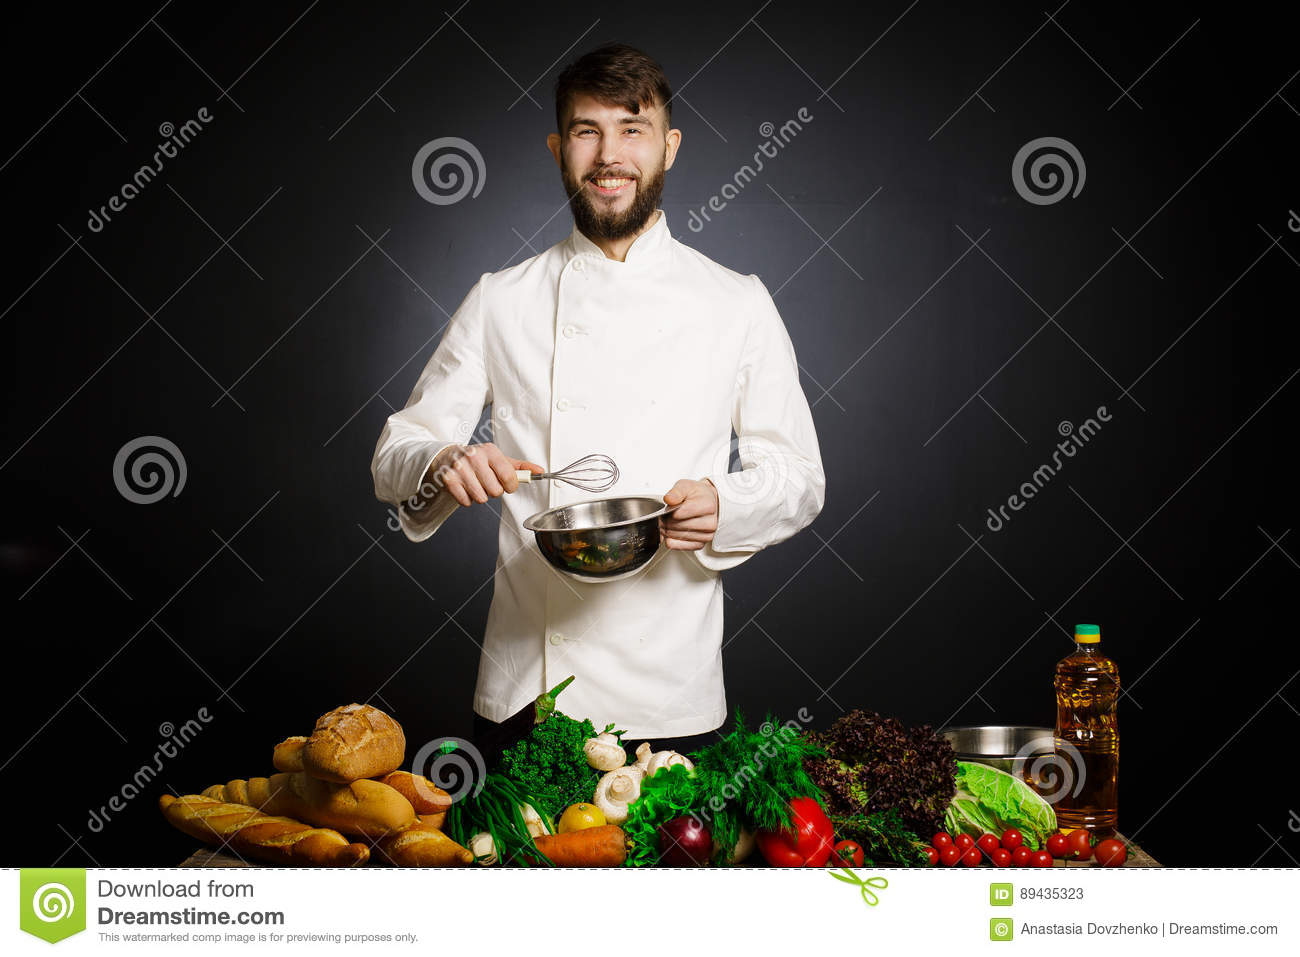 Cook chef with vegetables splah and black dark background. Food musical harmony. Chef juggling with vegetables and other food in t